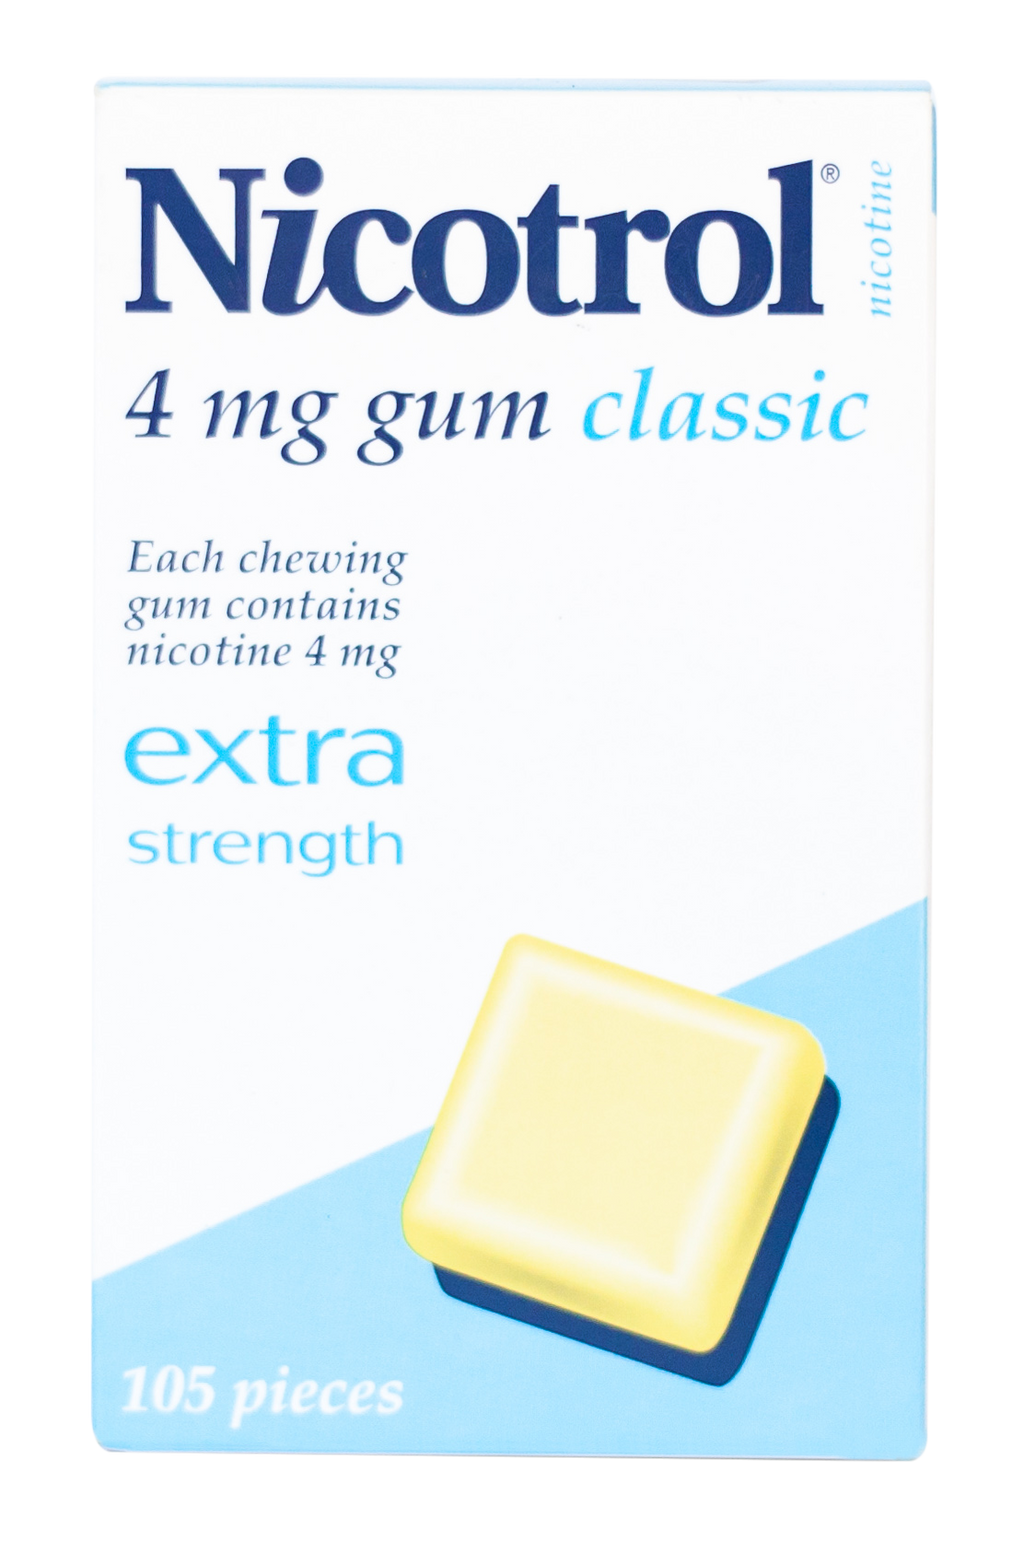 Nicotrol Gum 4mg Classic 105 Pieces Extra Strength to Quit Smoking